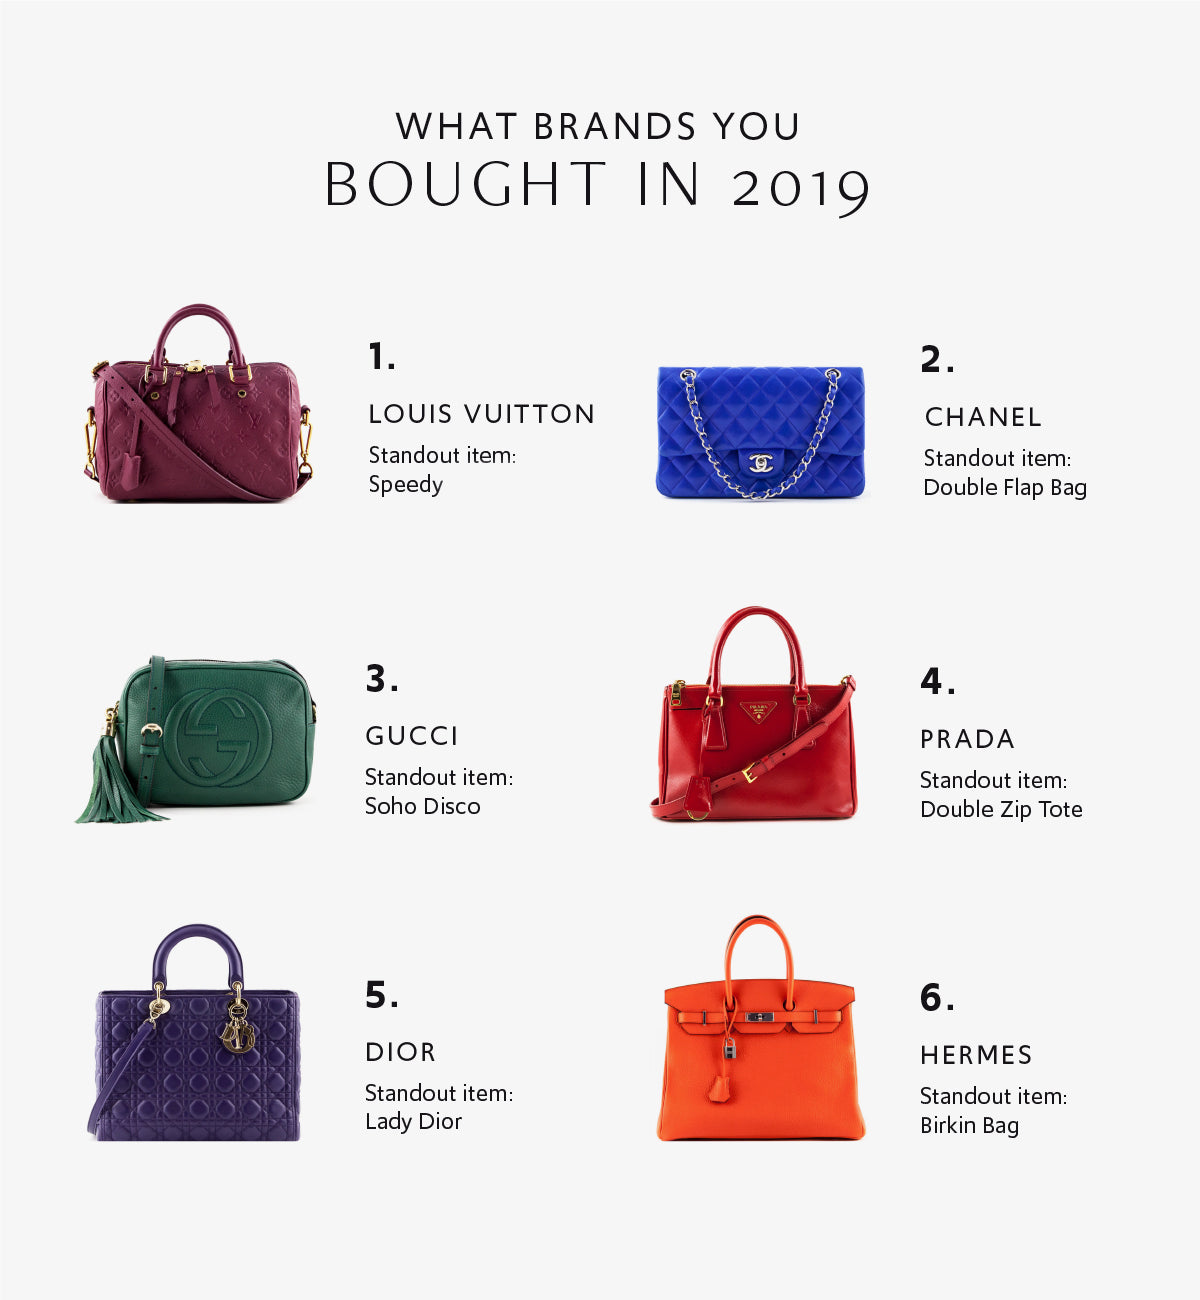 Top designer handbags you purchased in 2019